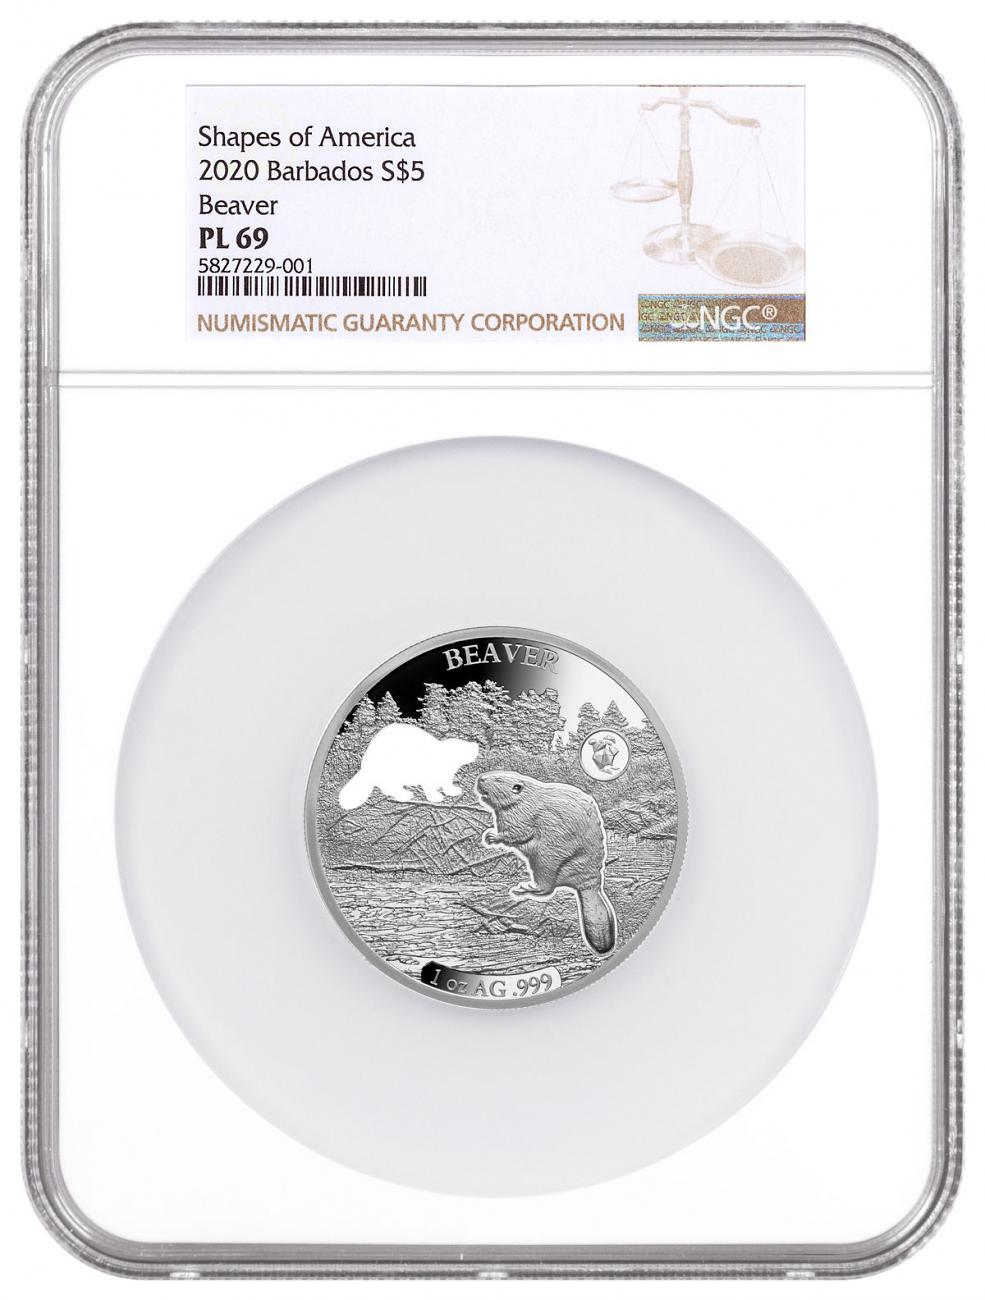 2020 Barbados Shapes of America - Cut-Out High Relief 1 oz Proof-Like Silver $5 Coin Beaver NGC PL69